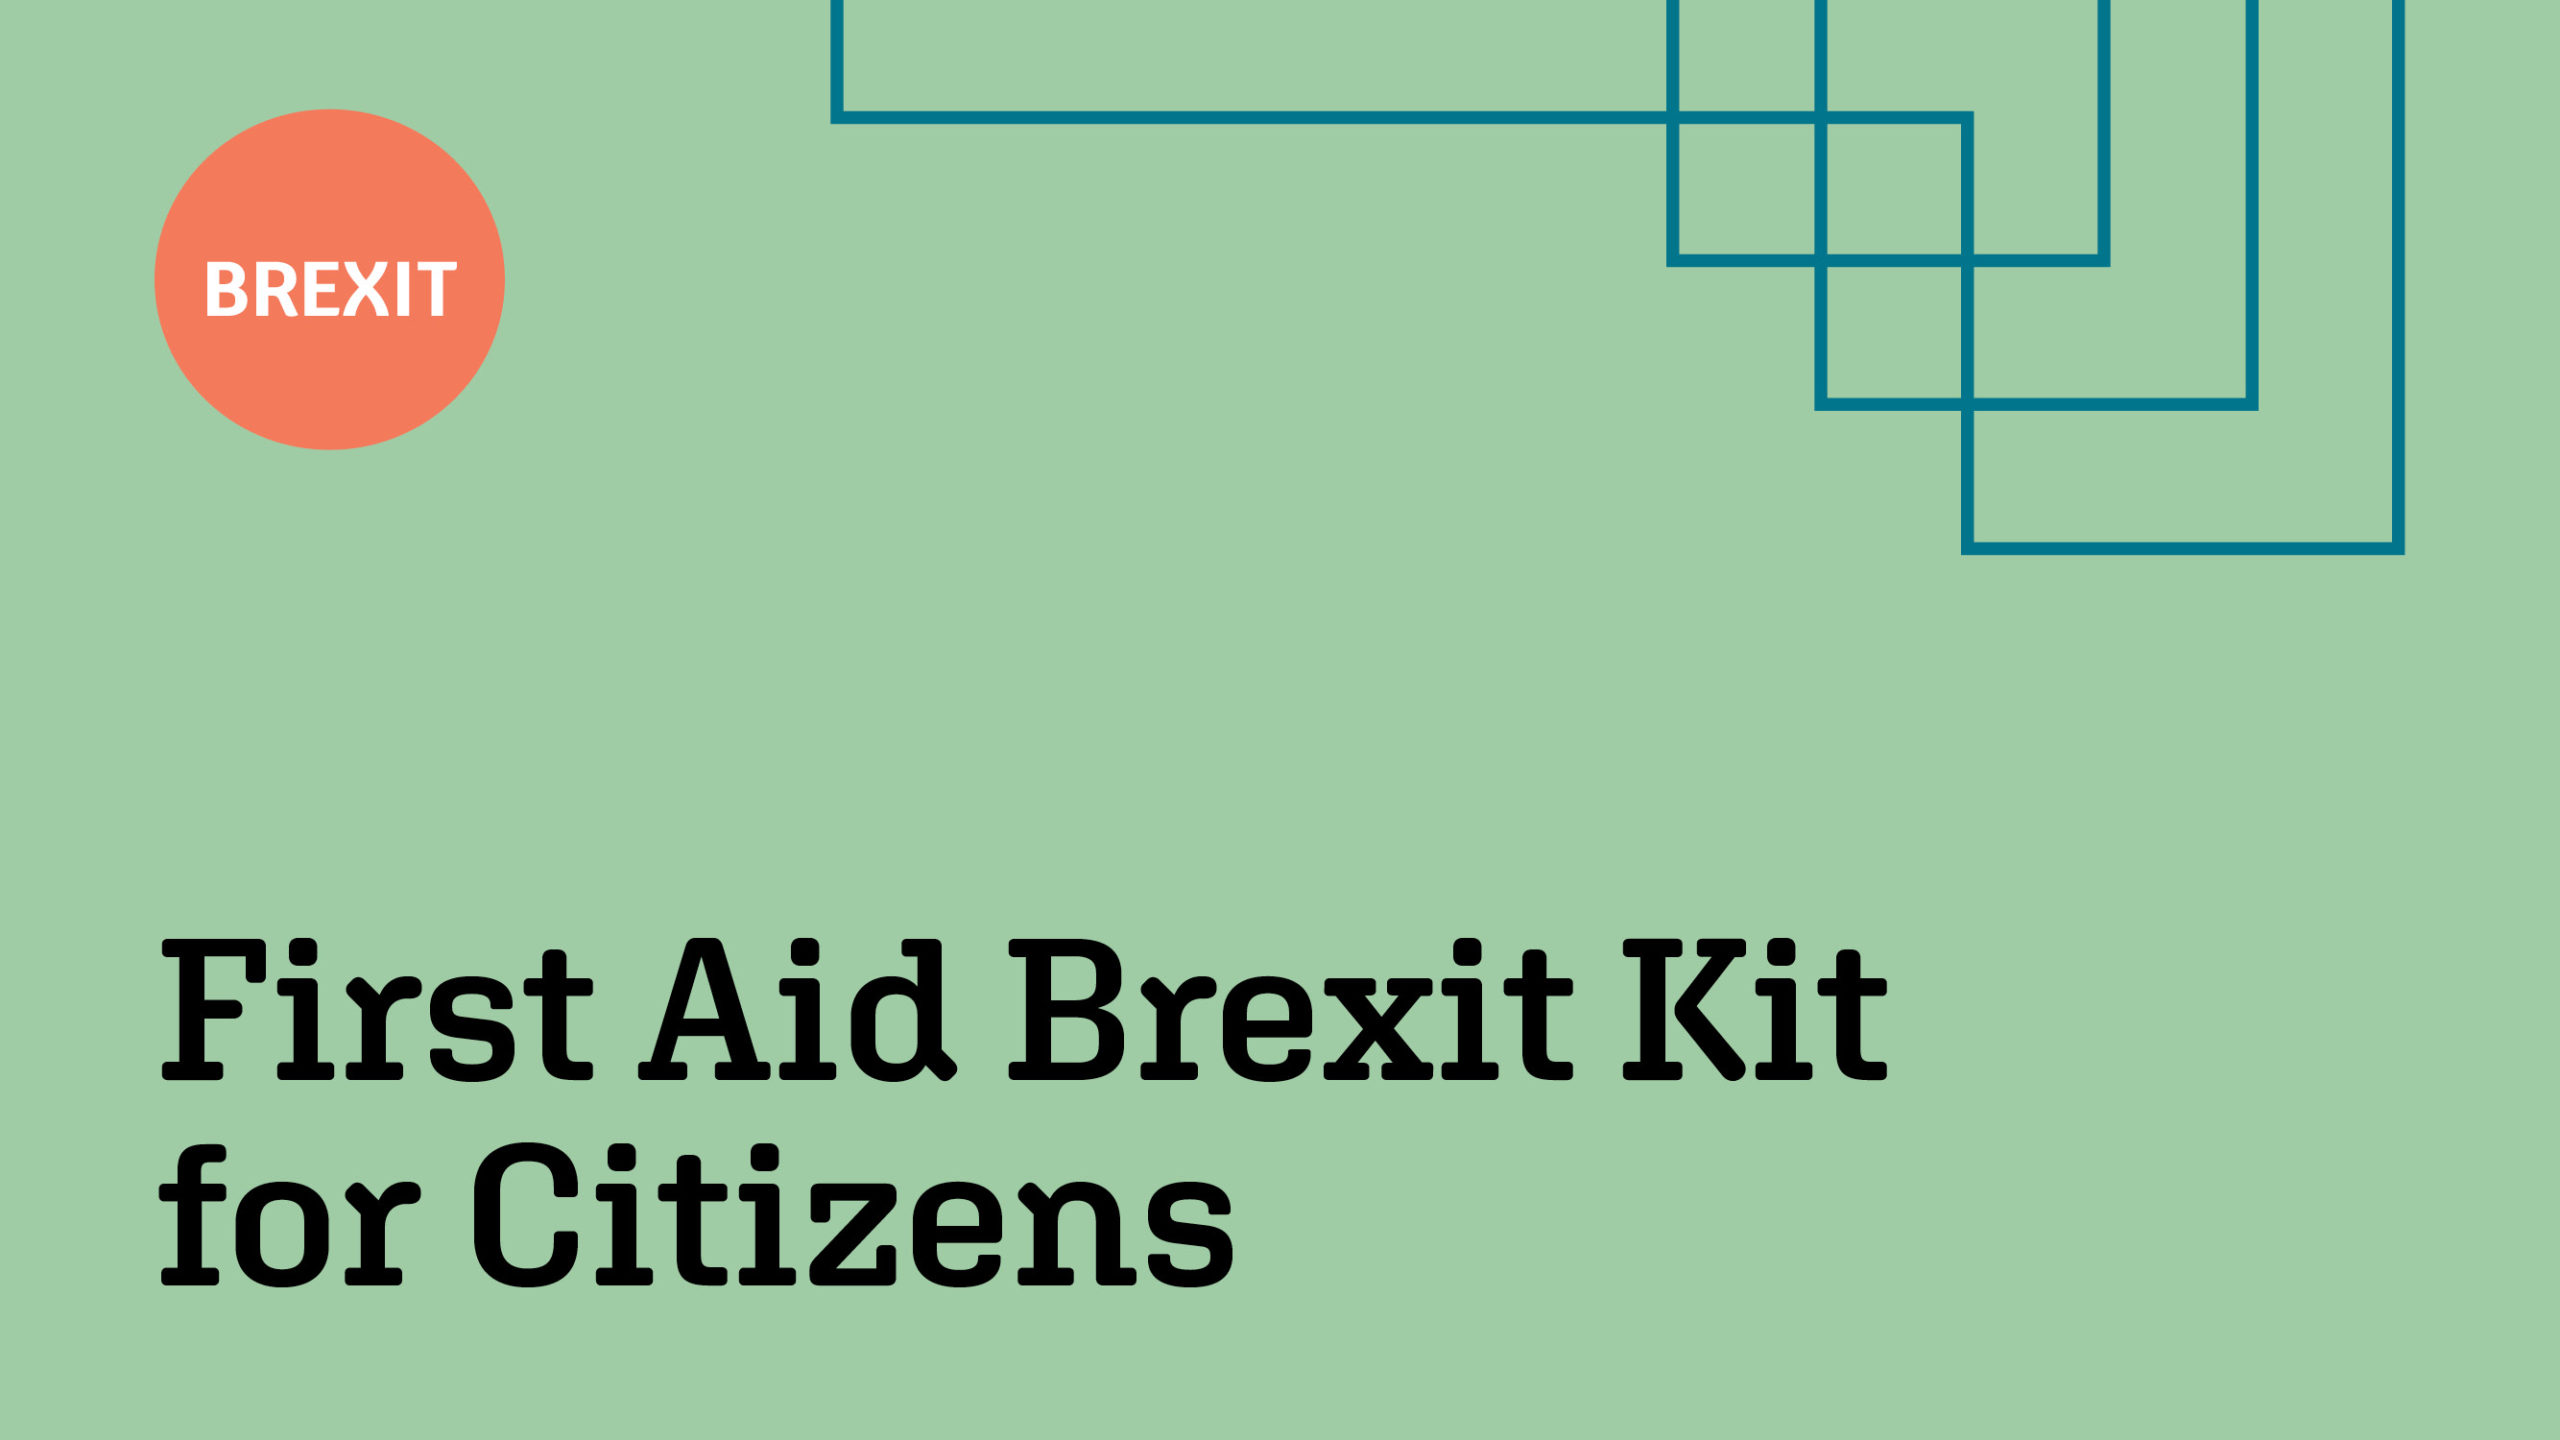 First Aid Brexit Kit for Citizens